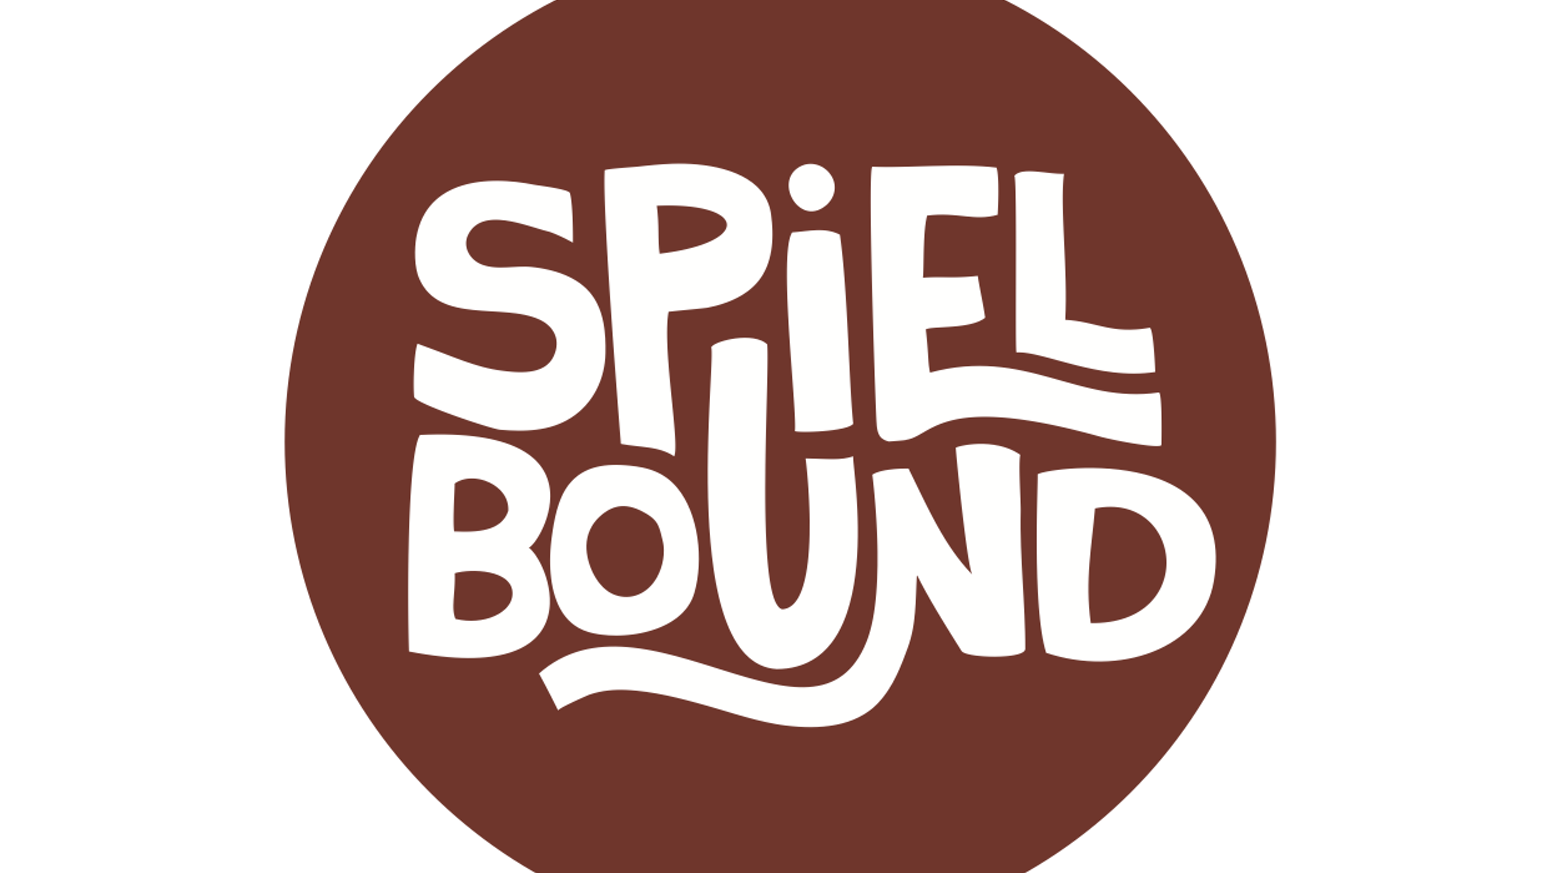 Spielbound is building better community, education, & health through board games. Thanks for making our board game café a reality!